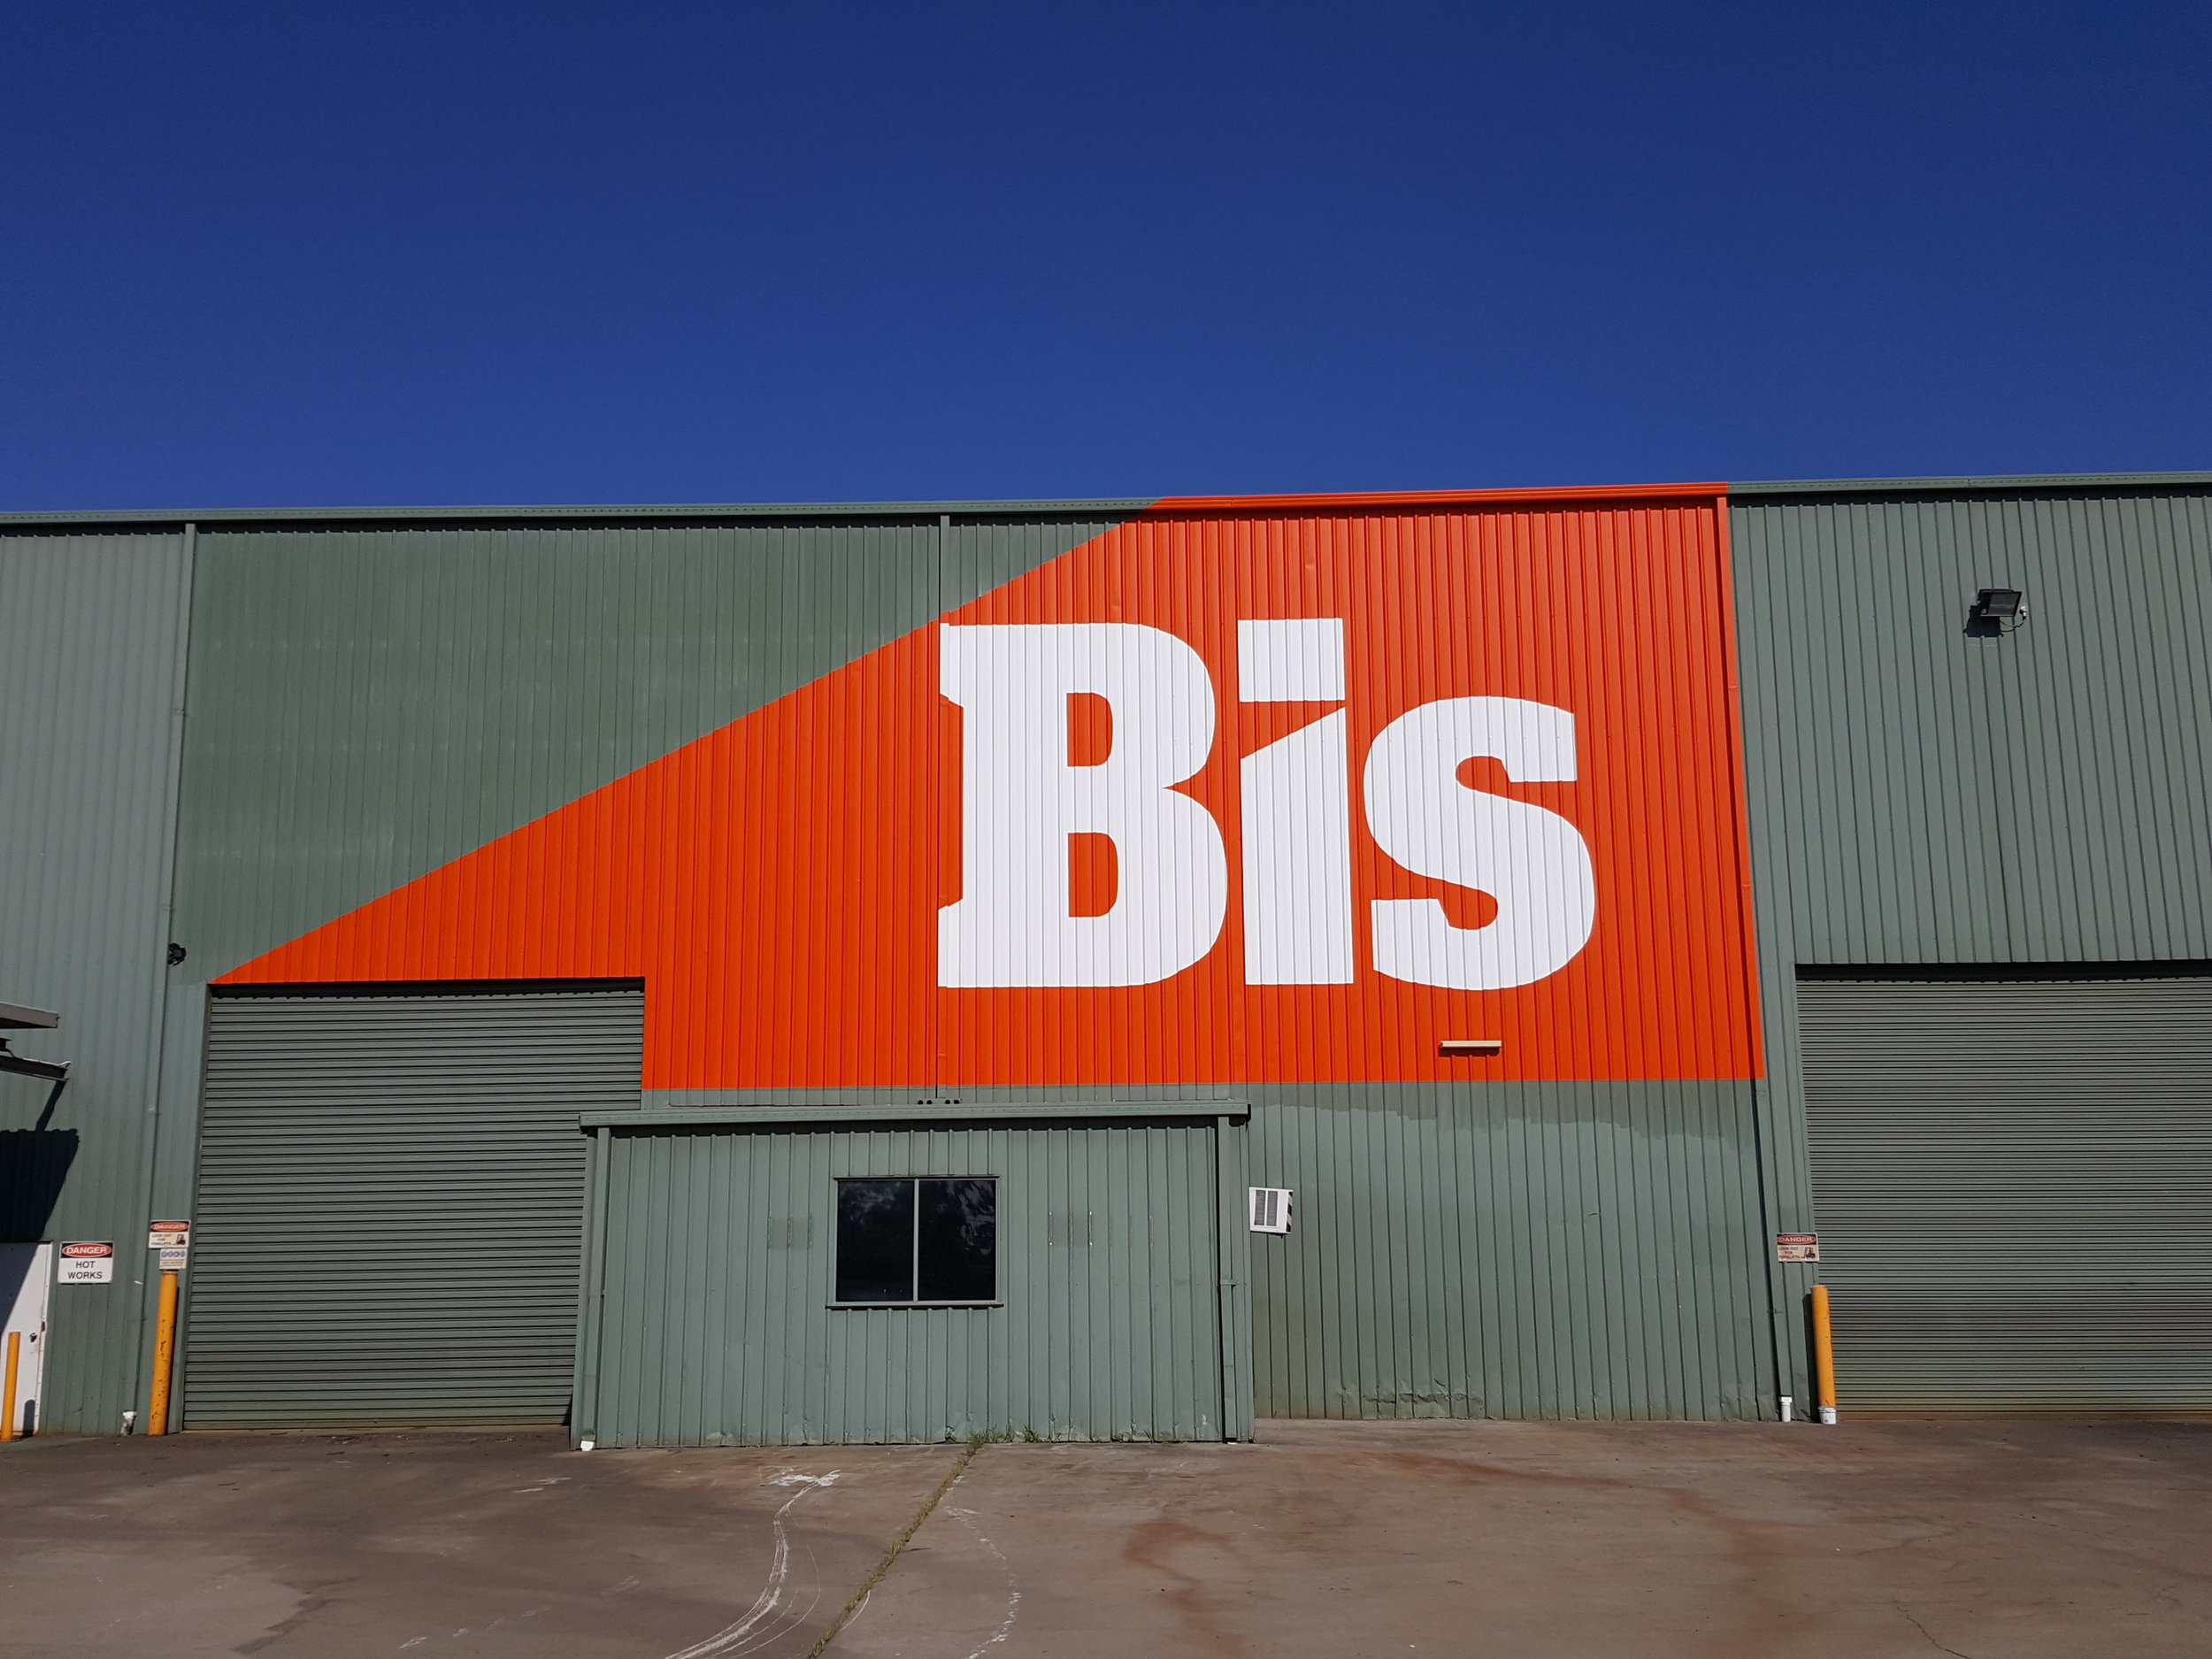 think graphic communication  Bis signs hand paint.jpg